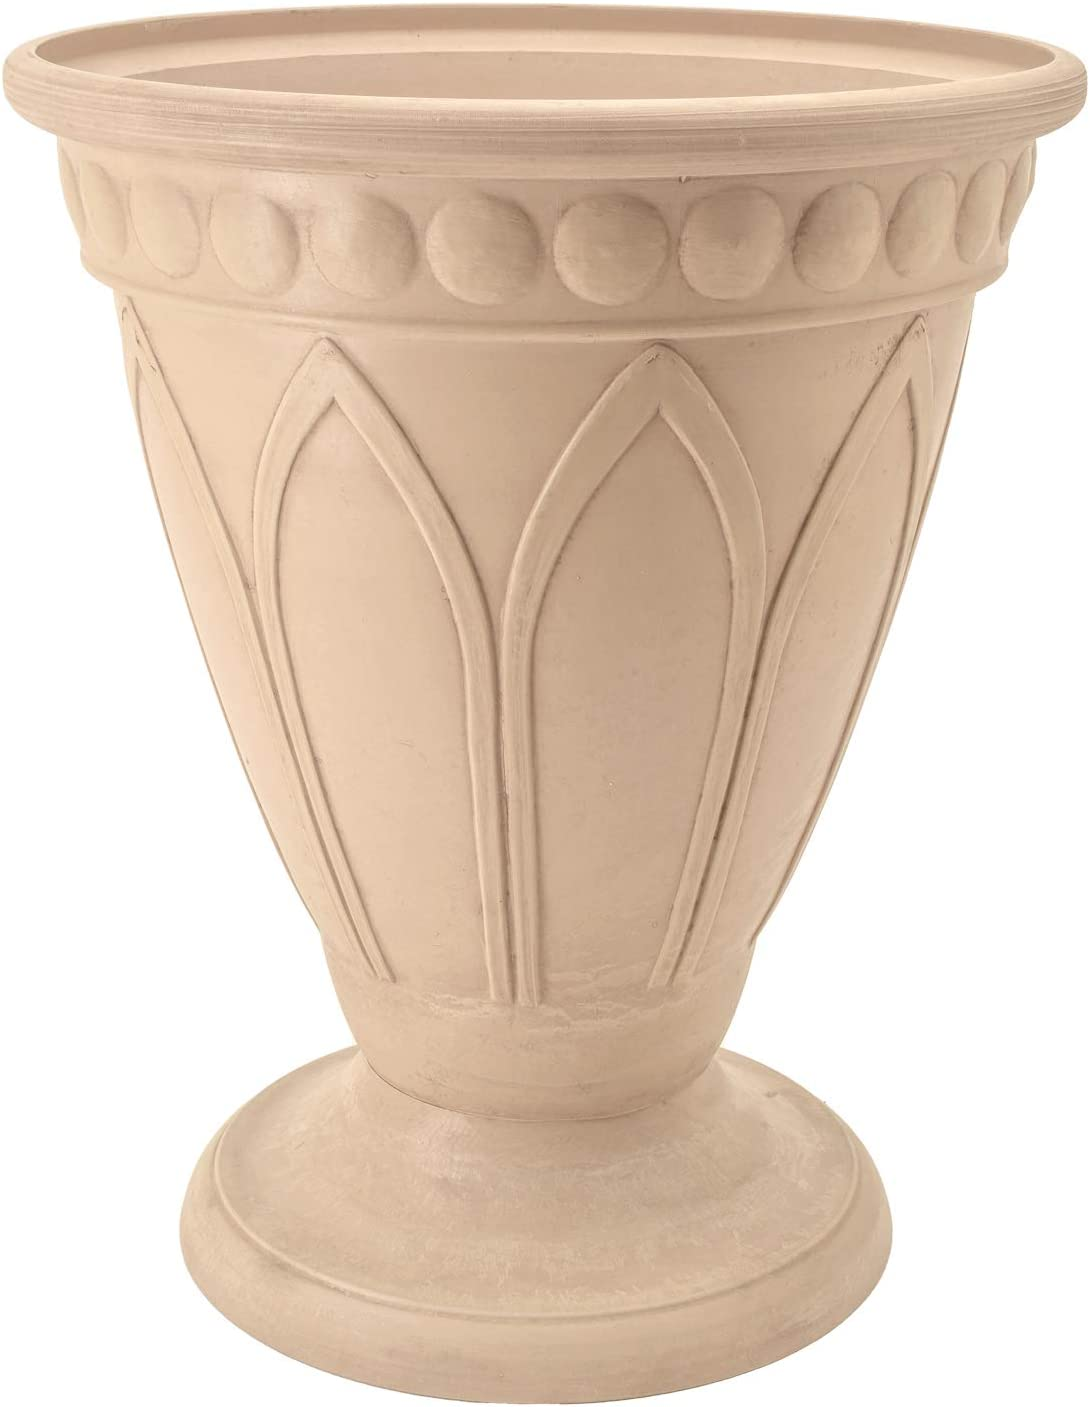 PSW HU40B Bristol Urn Planter 18-Inch Beige Cheap mail order specialty store Max 80% OFF by 16